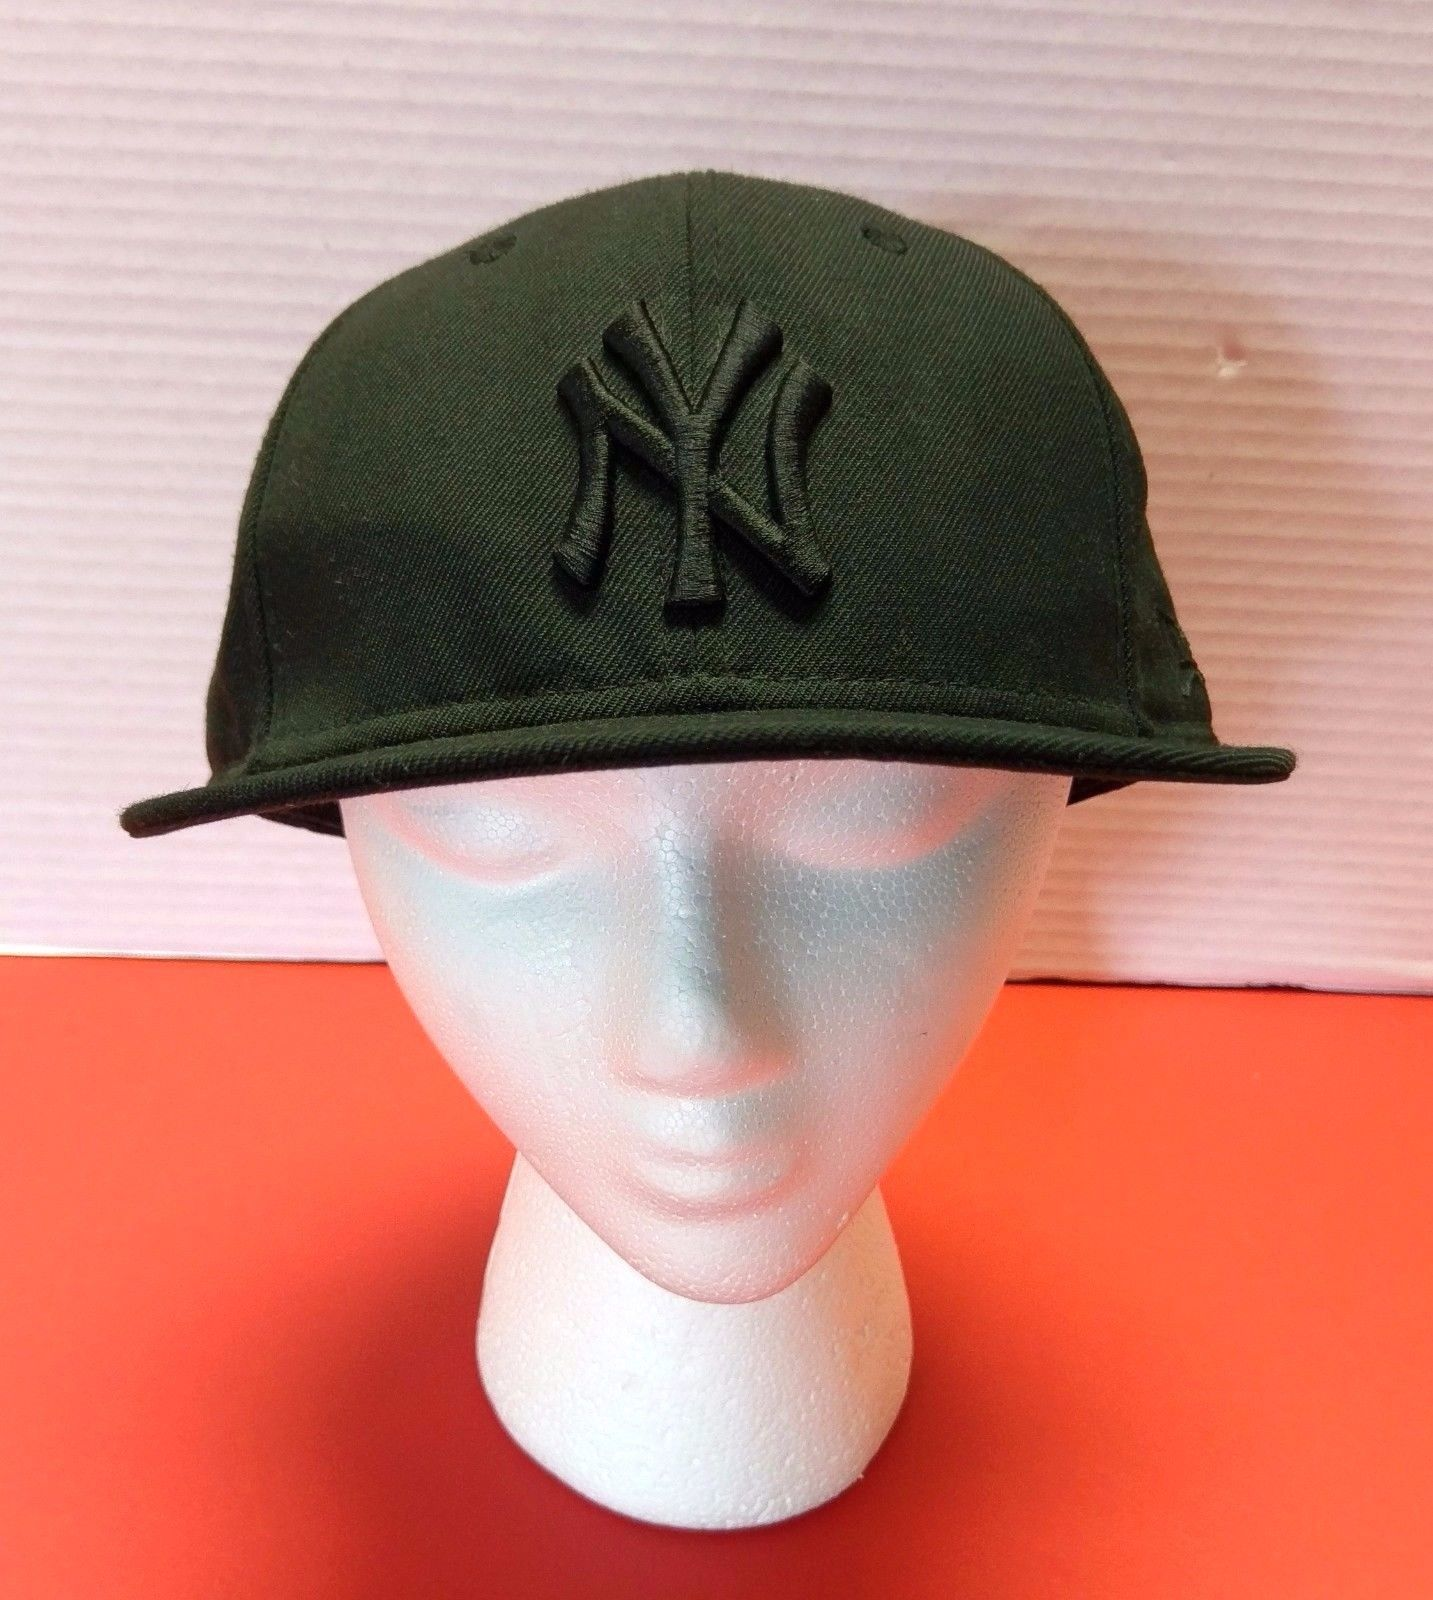 6981a870e682f S l1600. S l1600. Previous. 59Fifty Black New York Yankees Logo MLB  Baseball New Era Fitted Hat Cap 7 ...